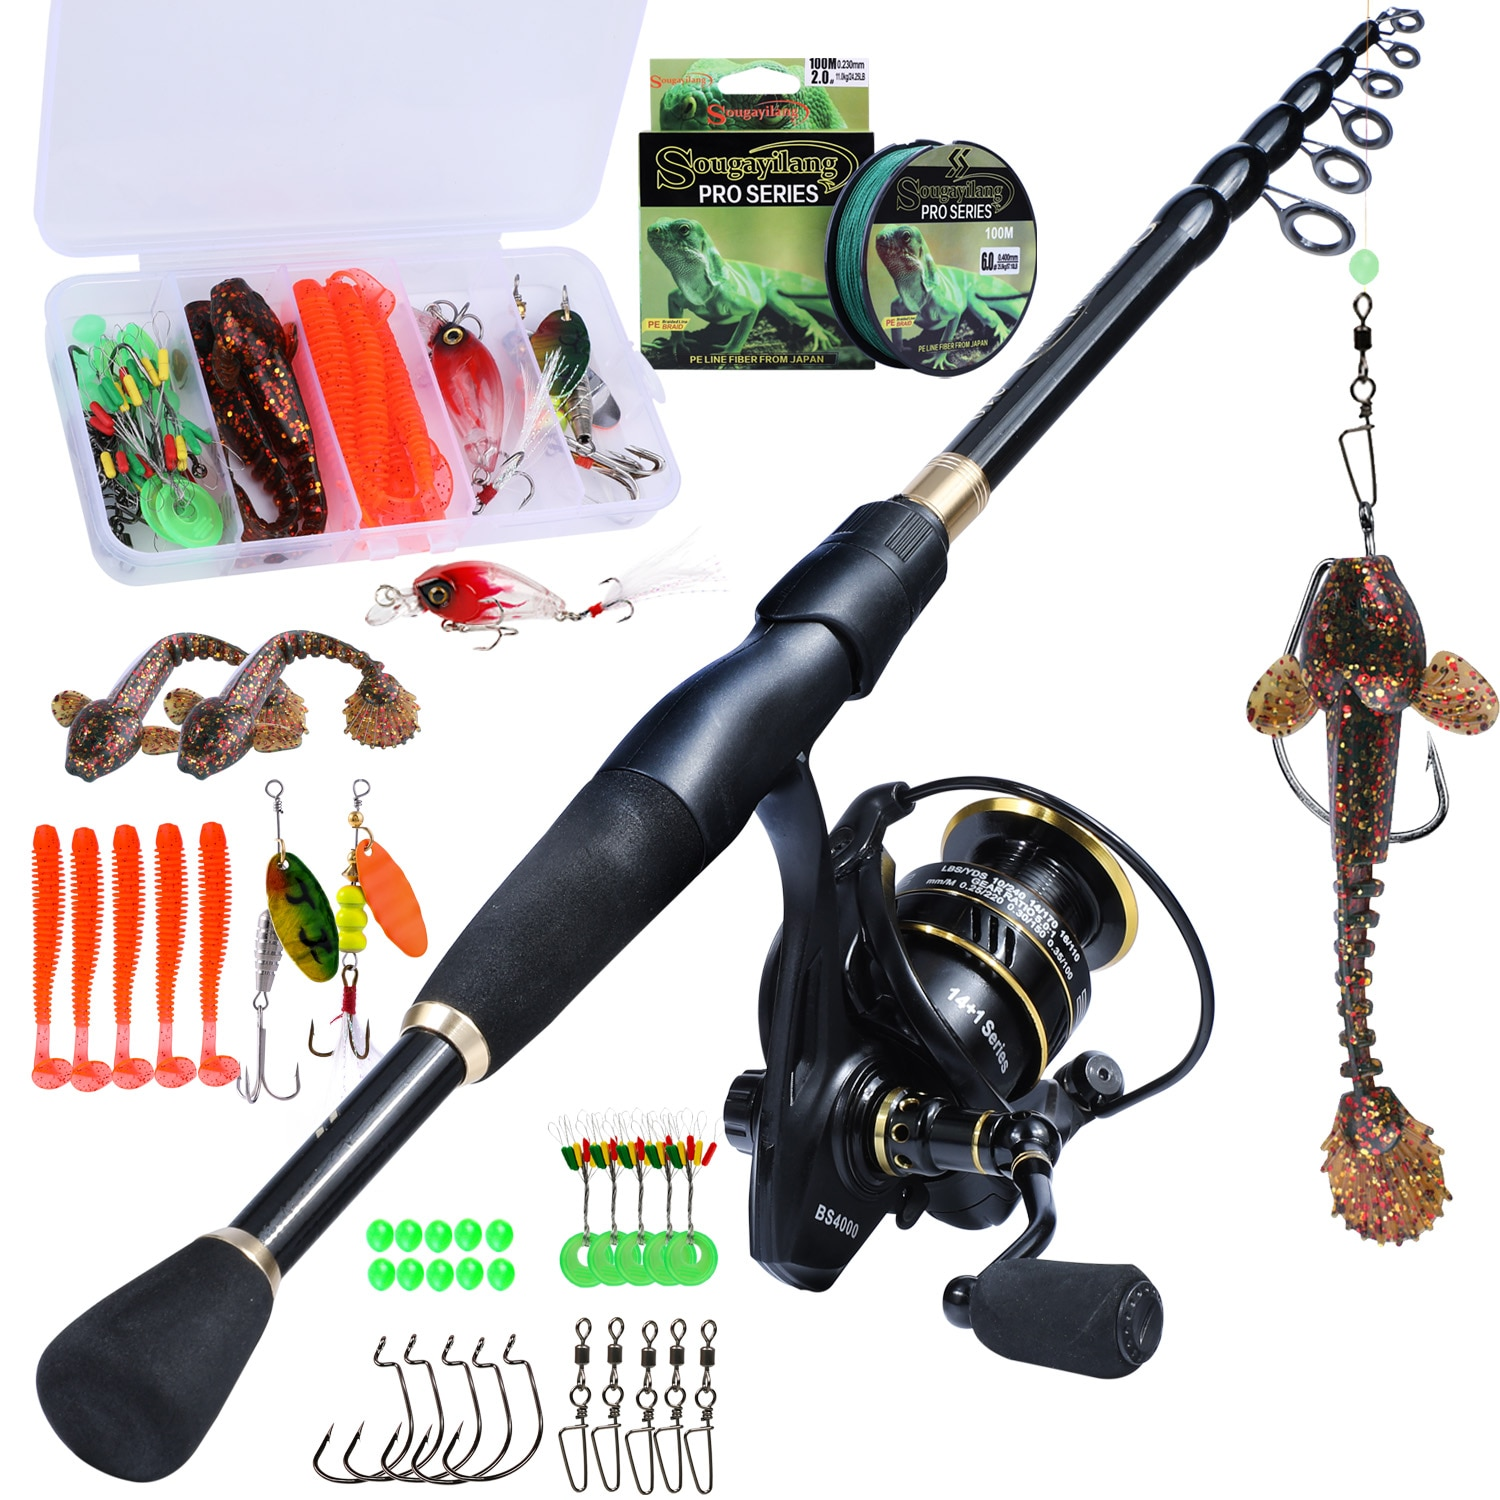 high quality 1 65m telescopic lure rod set casting spinning rod fishing reel fishing rod reel line lures hooks portable bag Sougayilang Fishing Rod and Reel Combo Set with Telescopic Spinning Rod and Spinning Reels Fishing Line Lure Hooks Full Kit